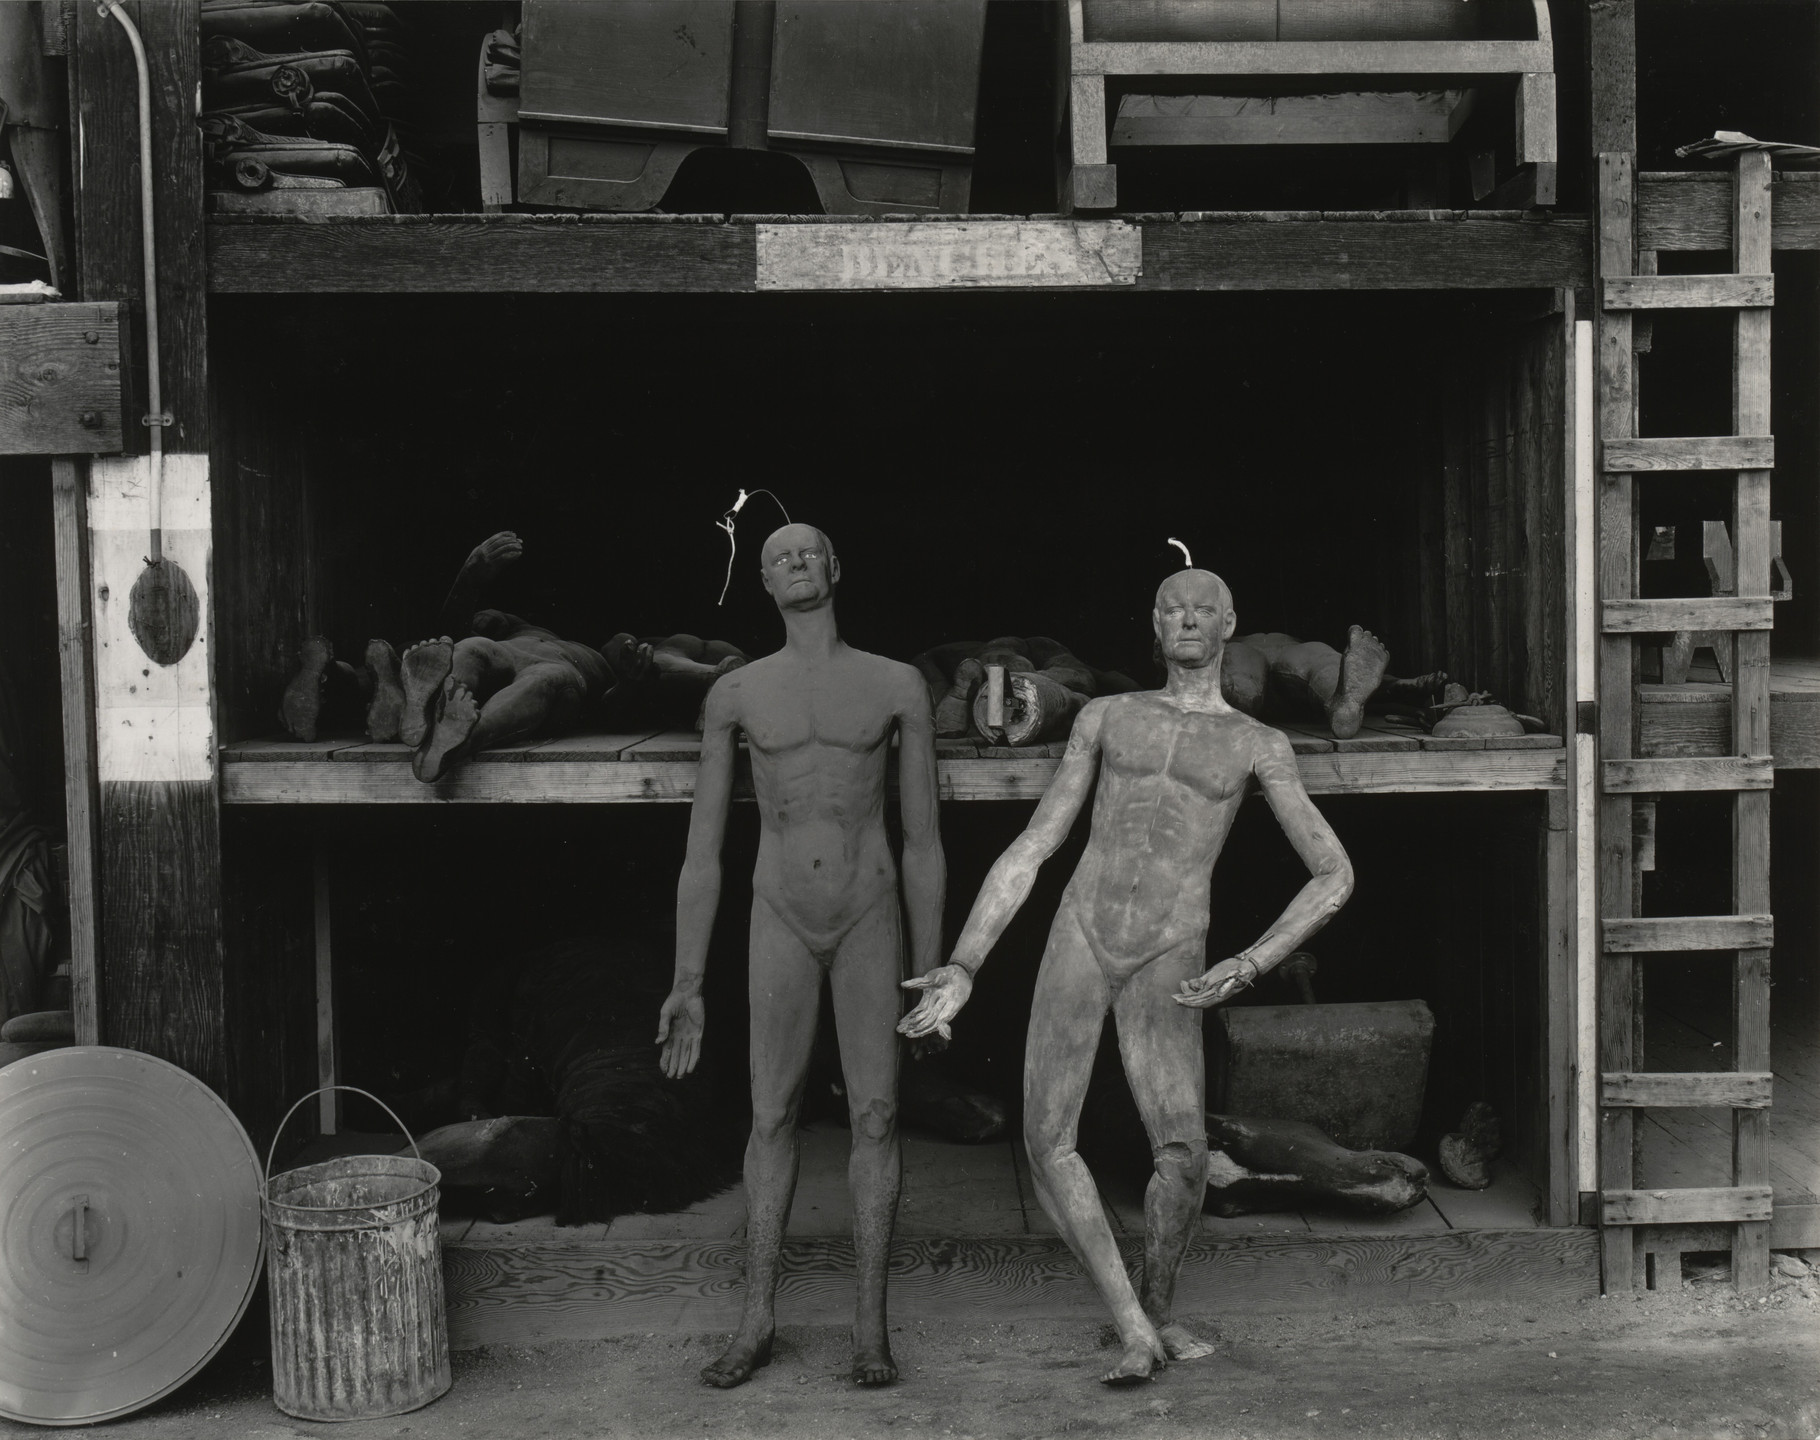 Edward Weston. Rubber Dummies, Metro Goldwyn Mayer Studios, Hollywood. 1939